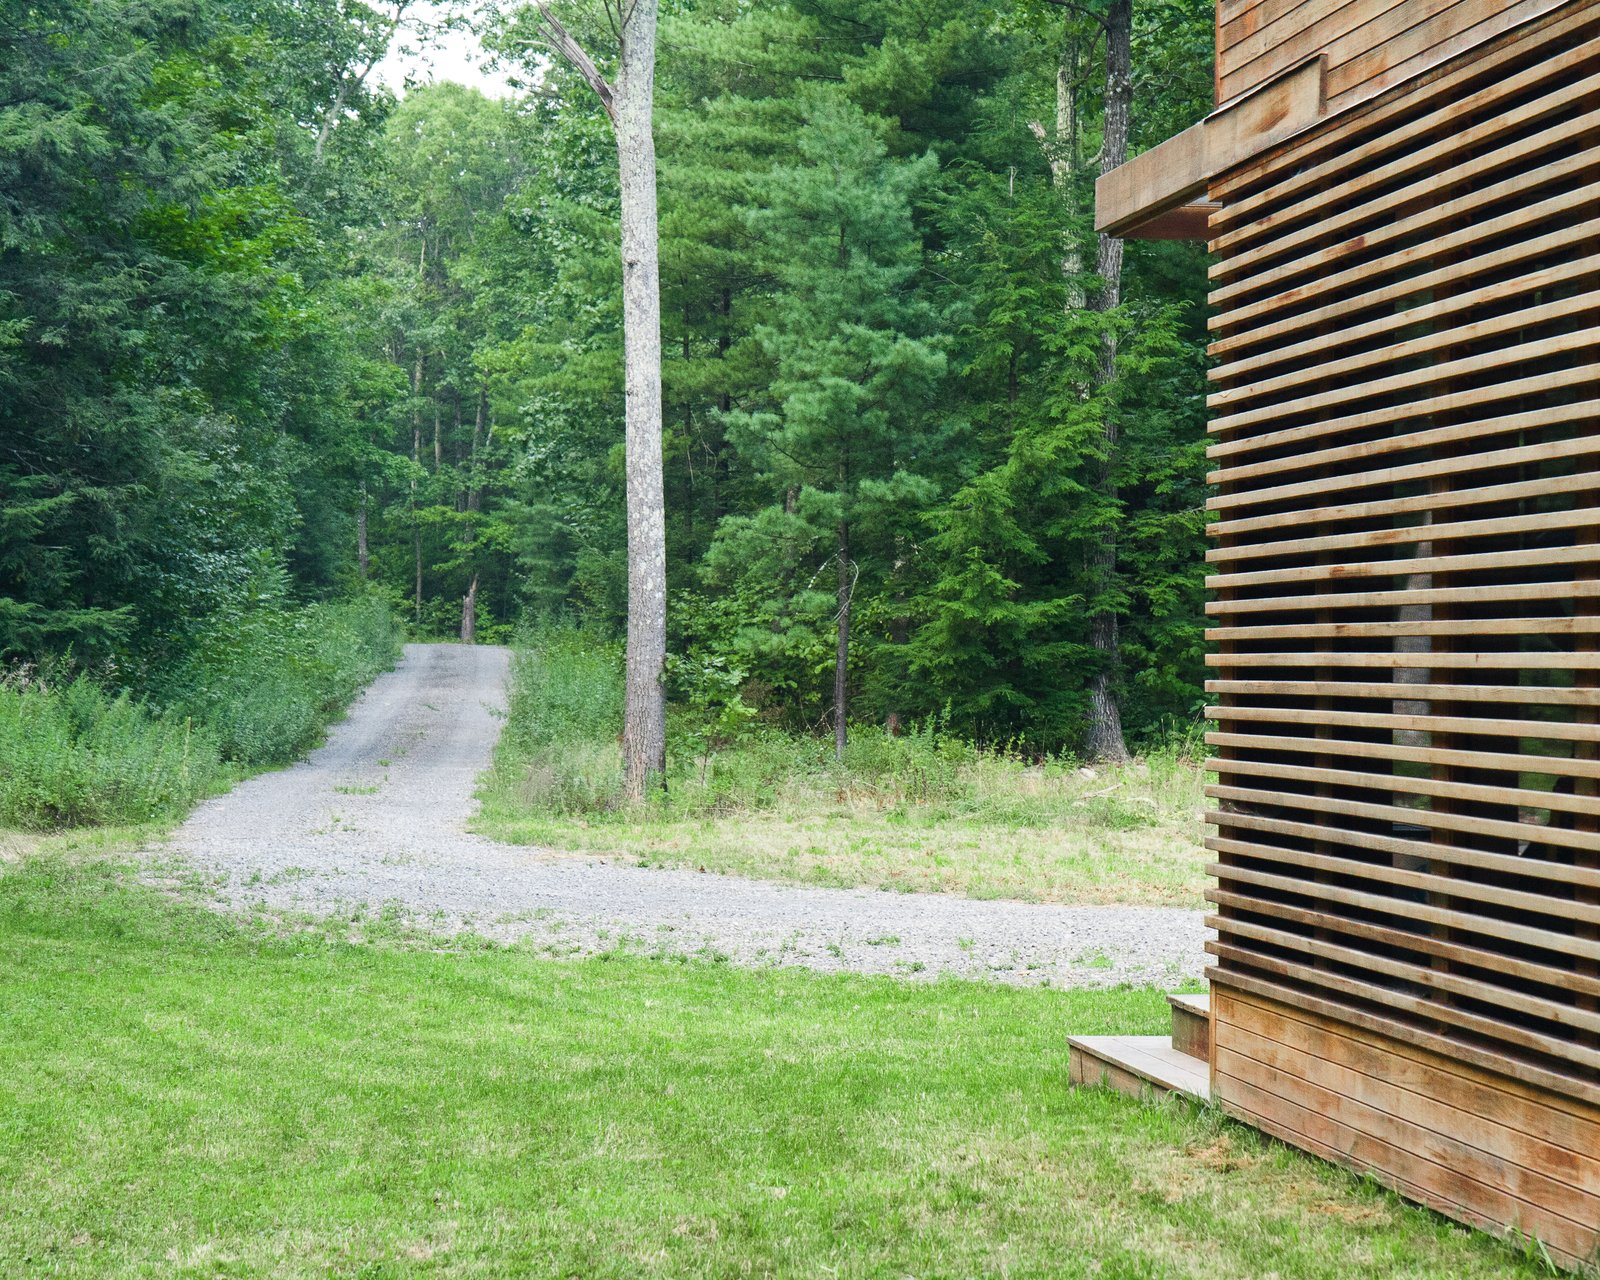 The home is accessed via a long gravel drive through the woods  Catskills Suburban by Resolution: 4 Architecture